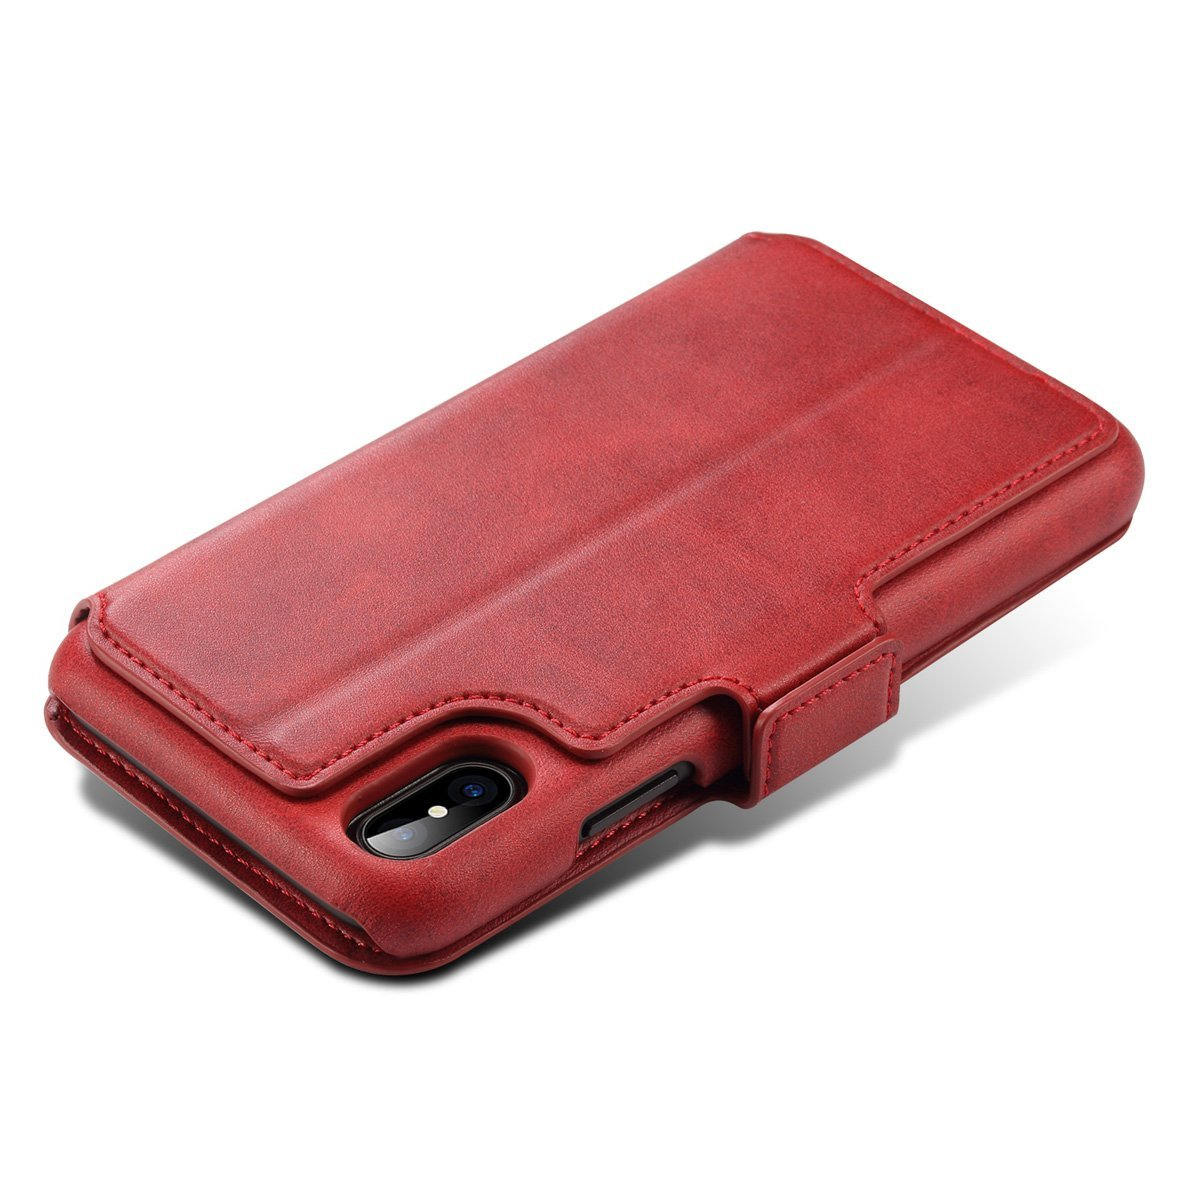 Scheam iPhone X Flip Cover, Case, Skins Card Slot [Stand Feature] Leather Wallet Case Vintage Book Style Magnetic Protective Cover Holder for iPhone X - Red by Scheam (Image #10)